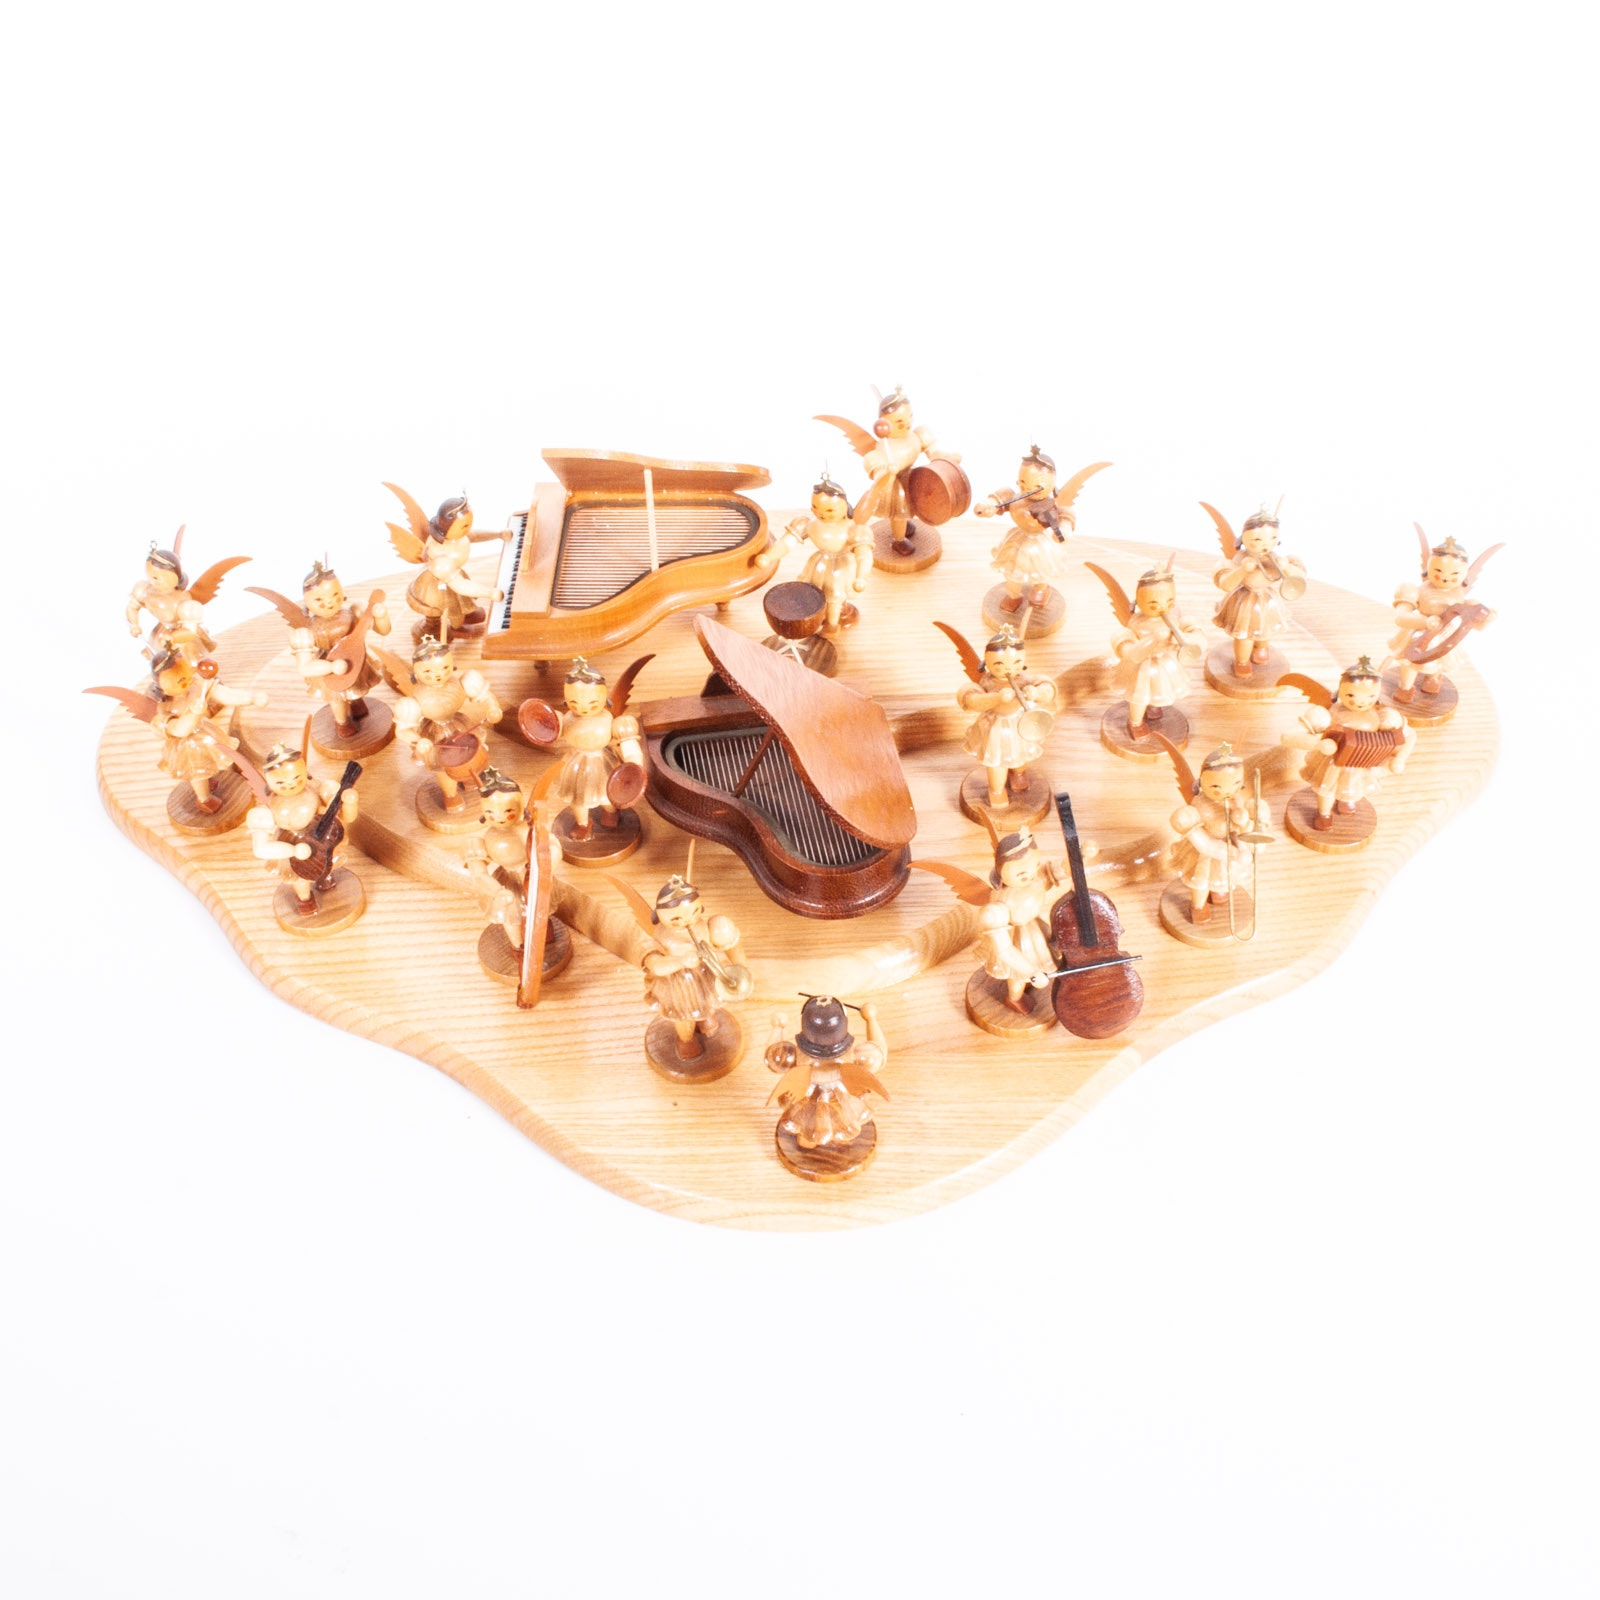 Vintage Erzgebirge Expertic Miniature Wooden Angels with Musical Instruments